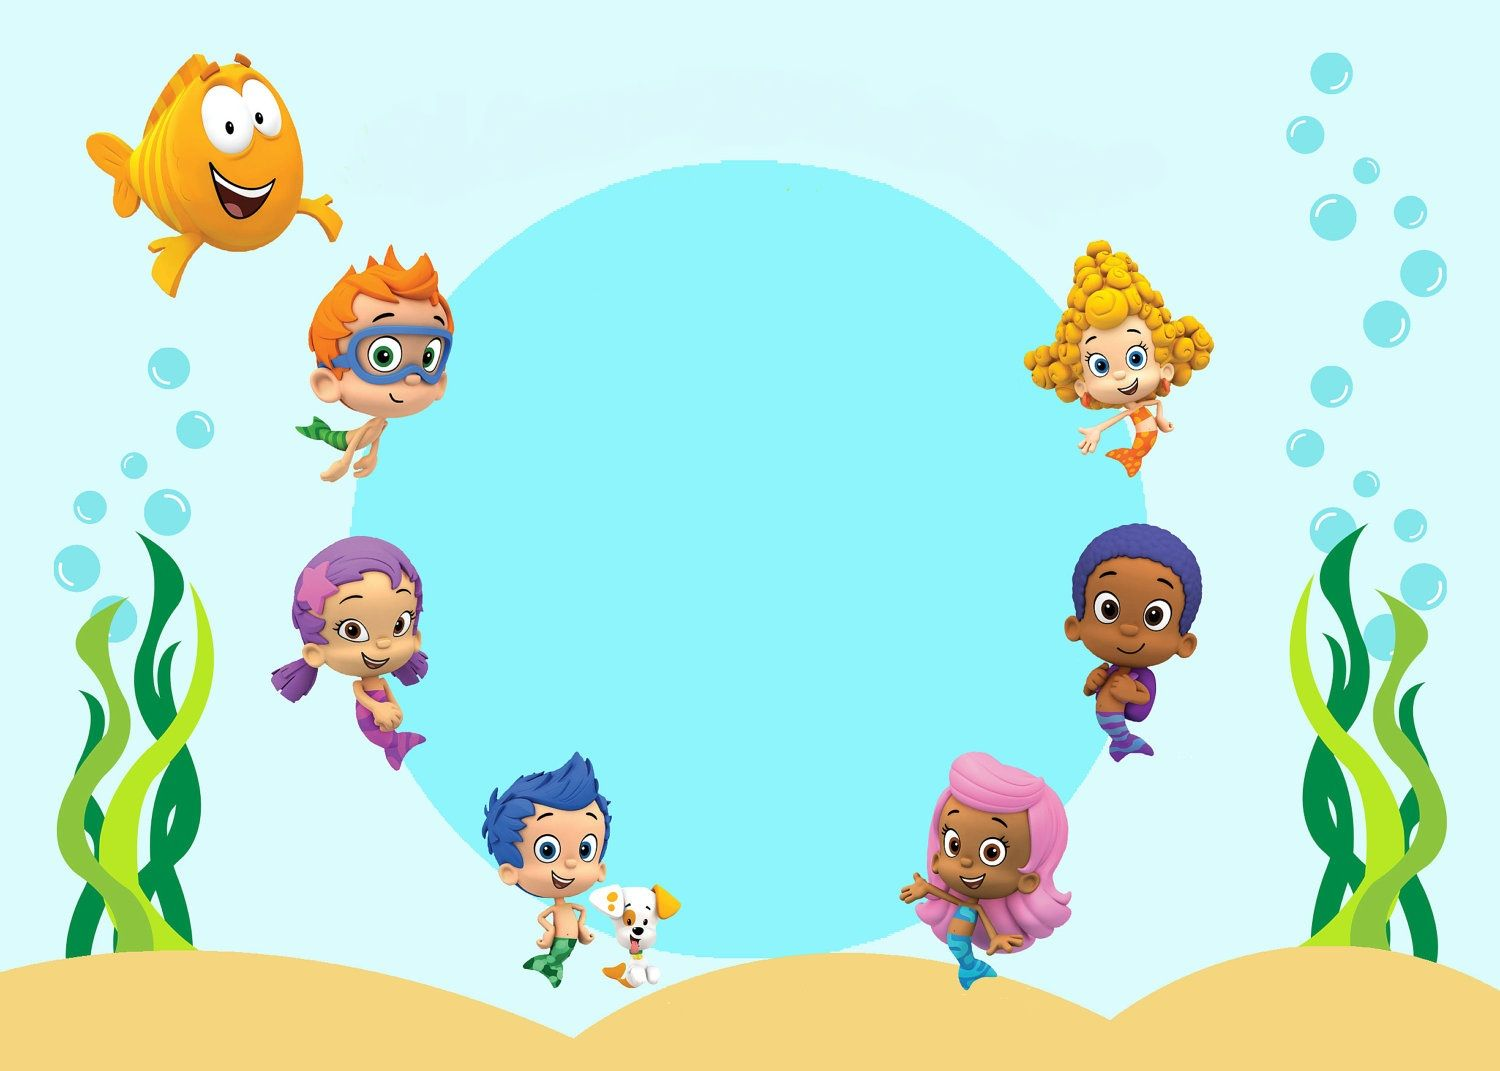 Bubble Guppies Convite Bubble Guppies Birthday Party Bubble Guppies Invitations Bubble Guppies Party